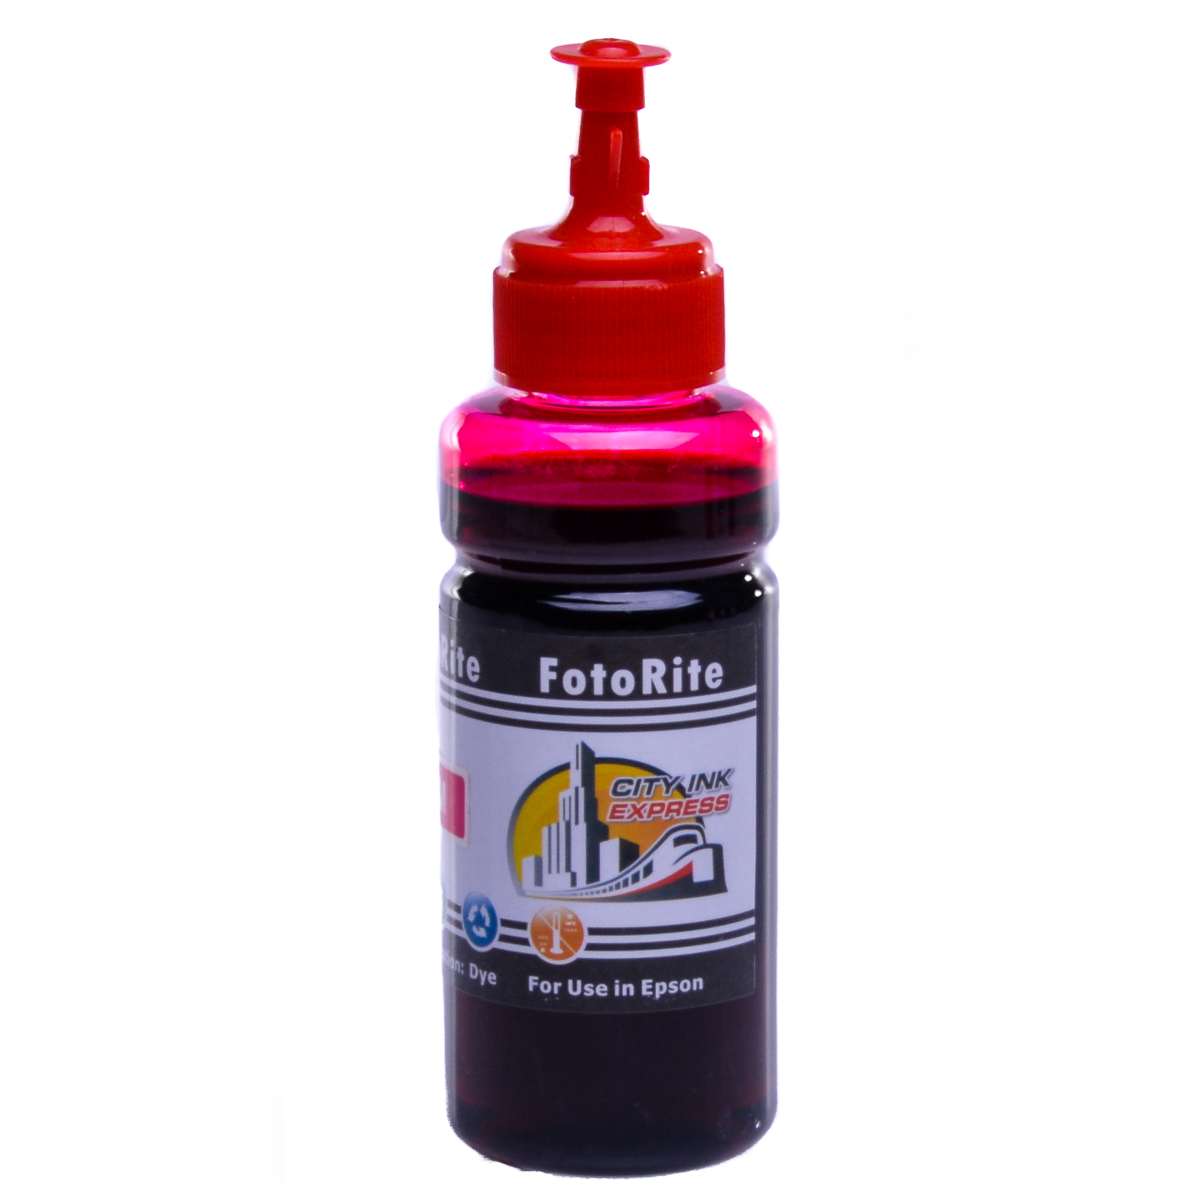 Cheap Magenta dye ink replaces Epson Stylus SX115 - T0713